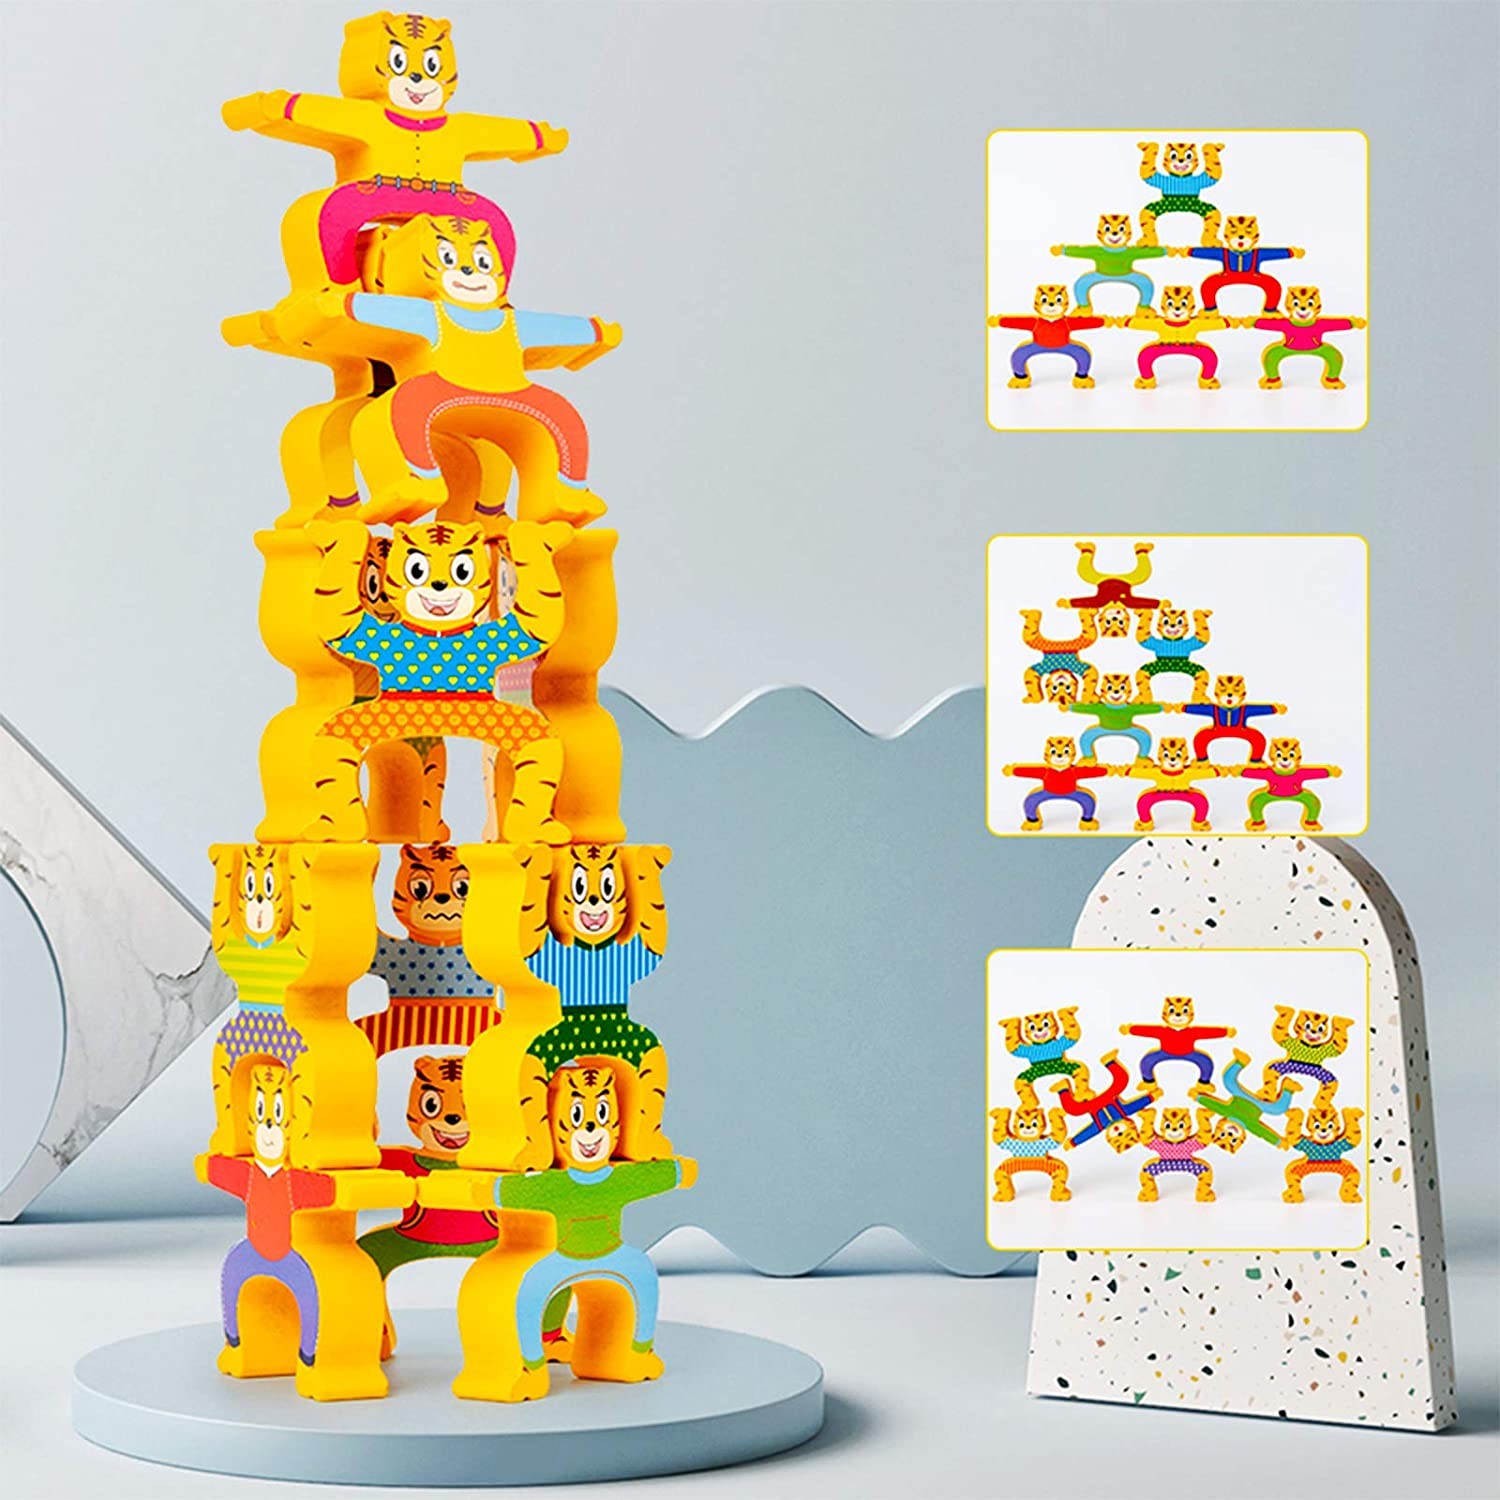 Stacking Game,Wooden Animals Balancing Block Puzzles Building Toy Educational STEM Montessori for Preschool Kids Toddlers Sorting Stacking Skill Developing Intelligence Play Gifts